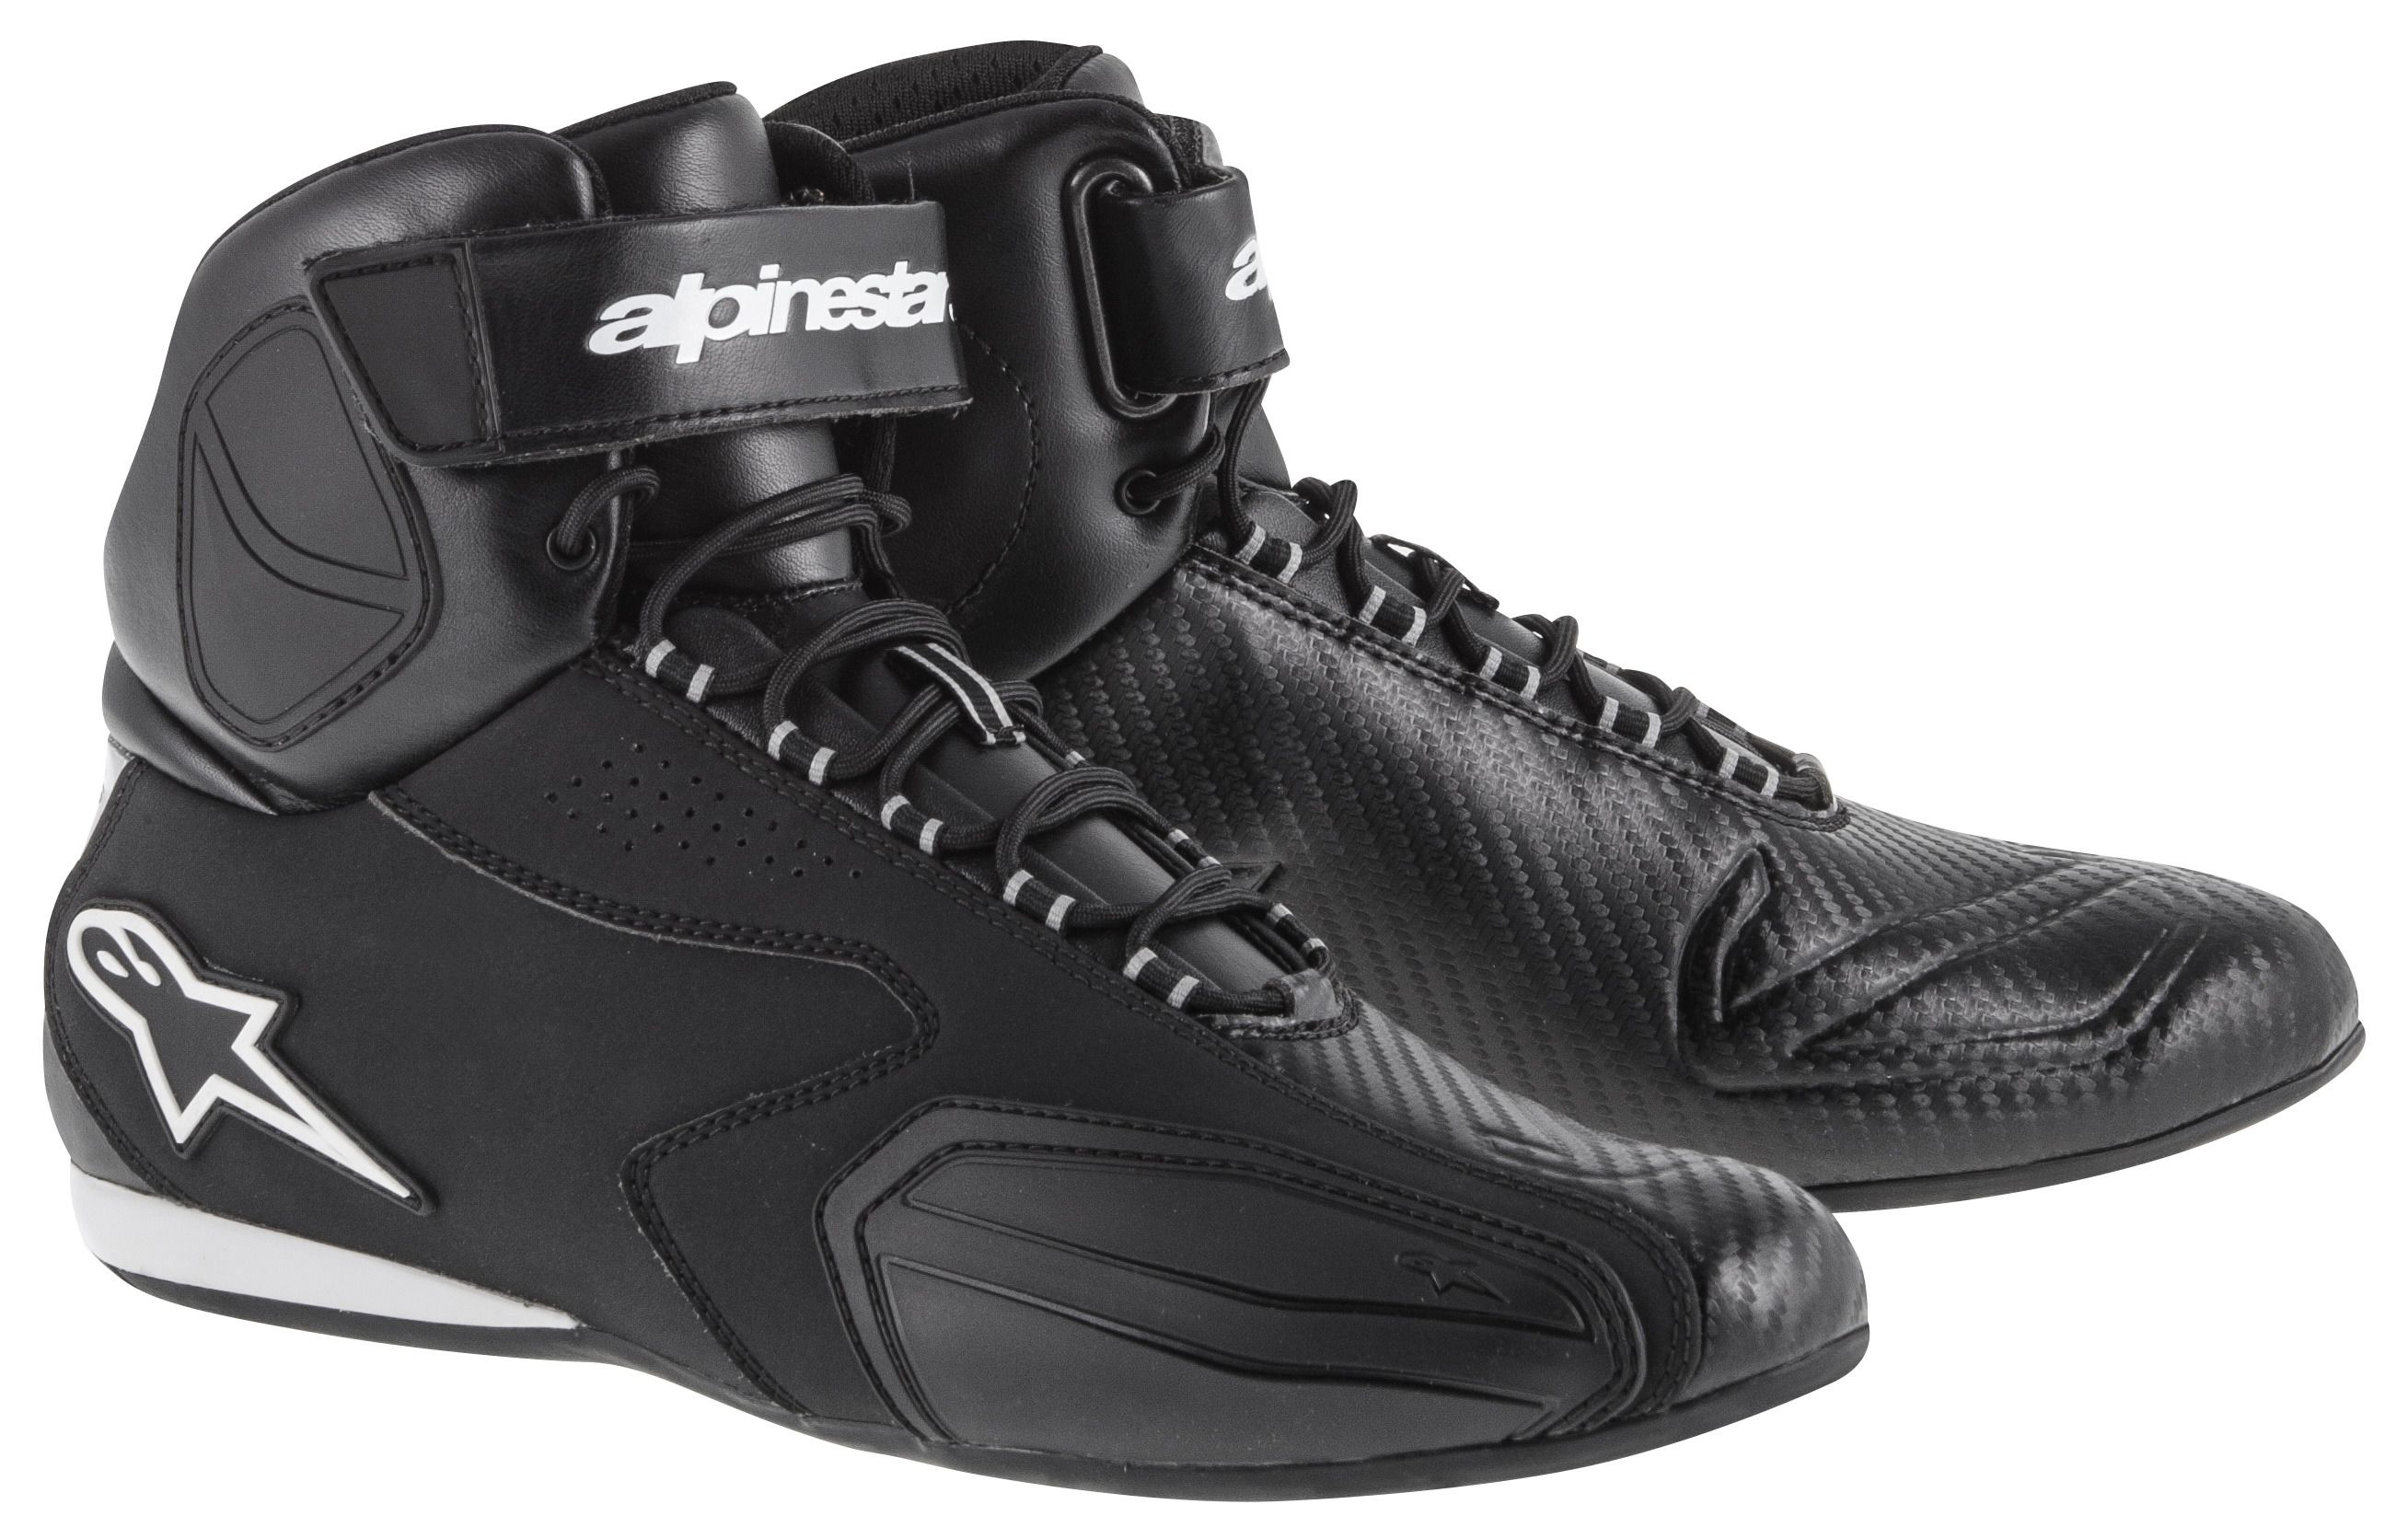 Alpinestars Faster Shoes Revzilla